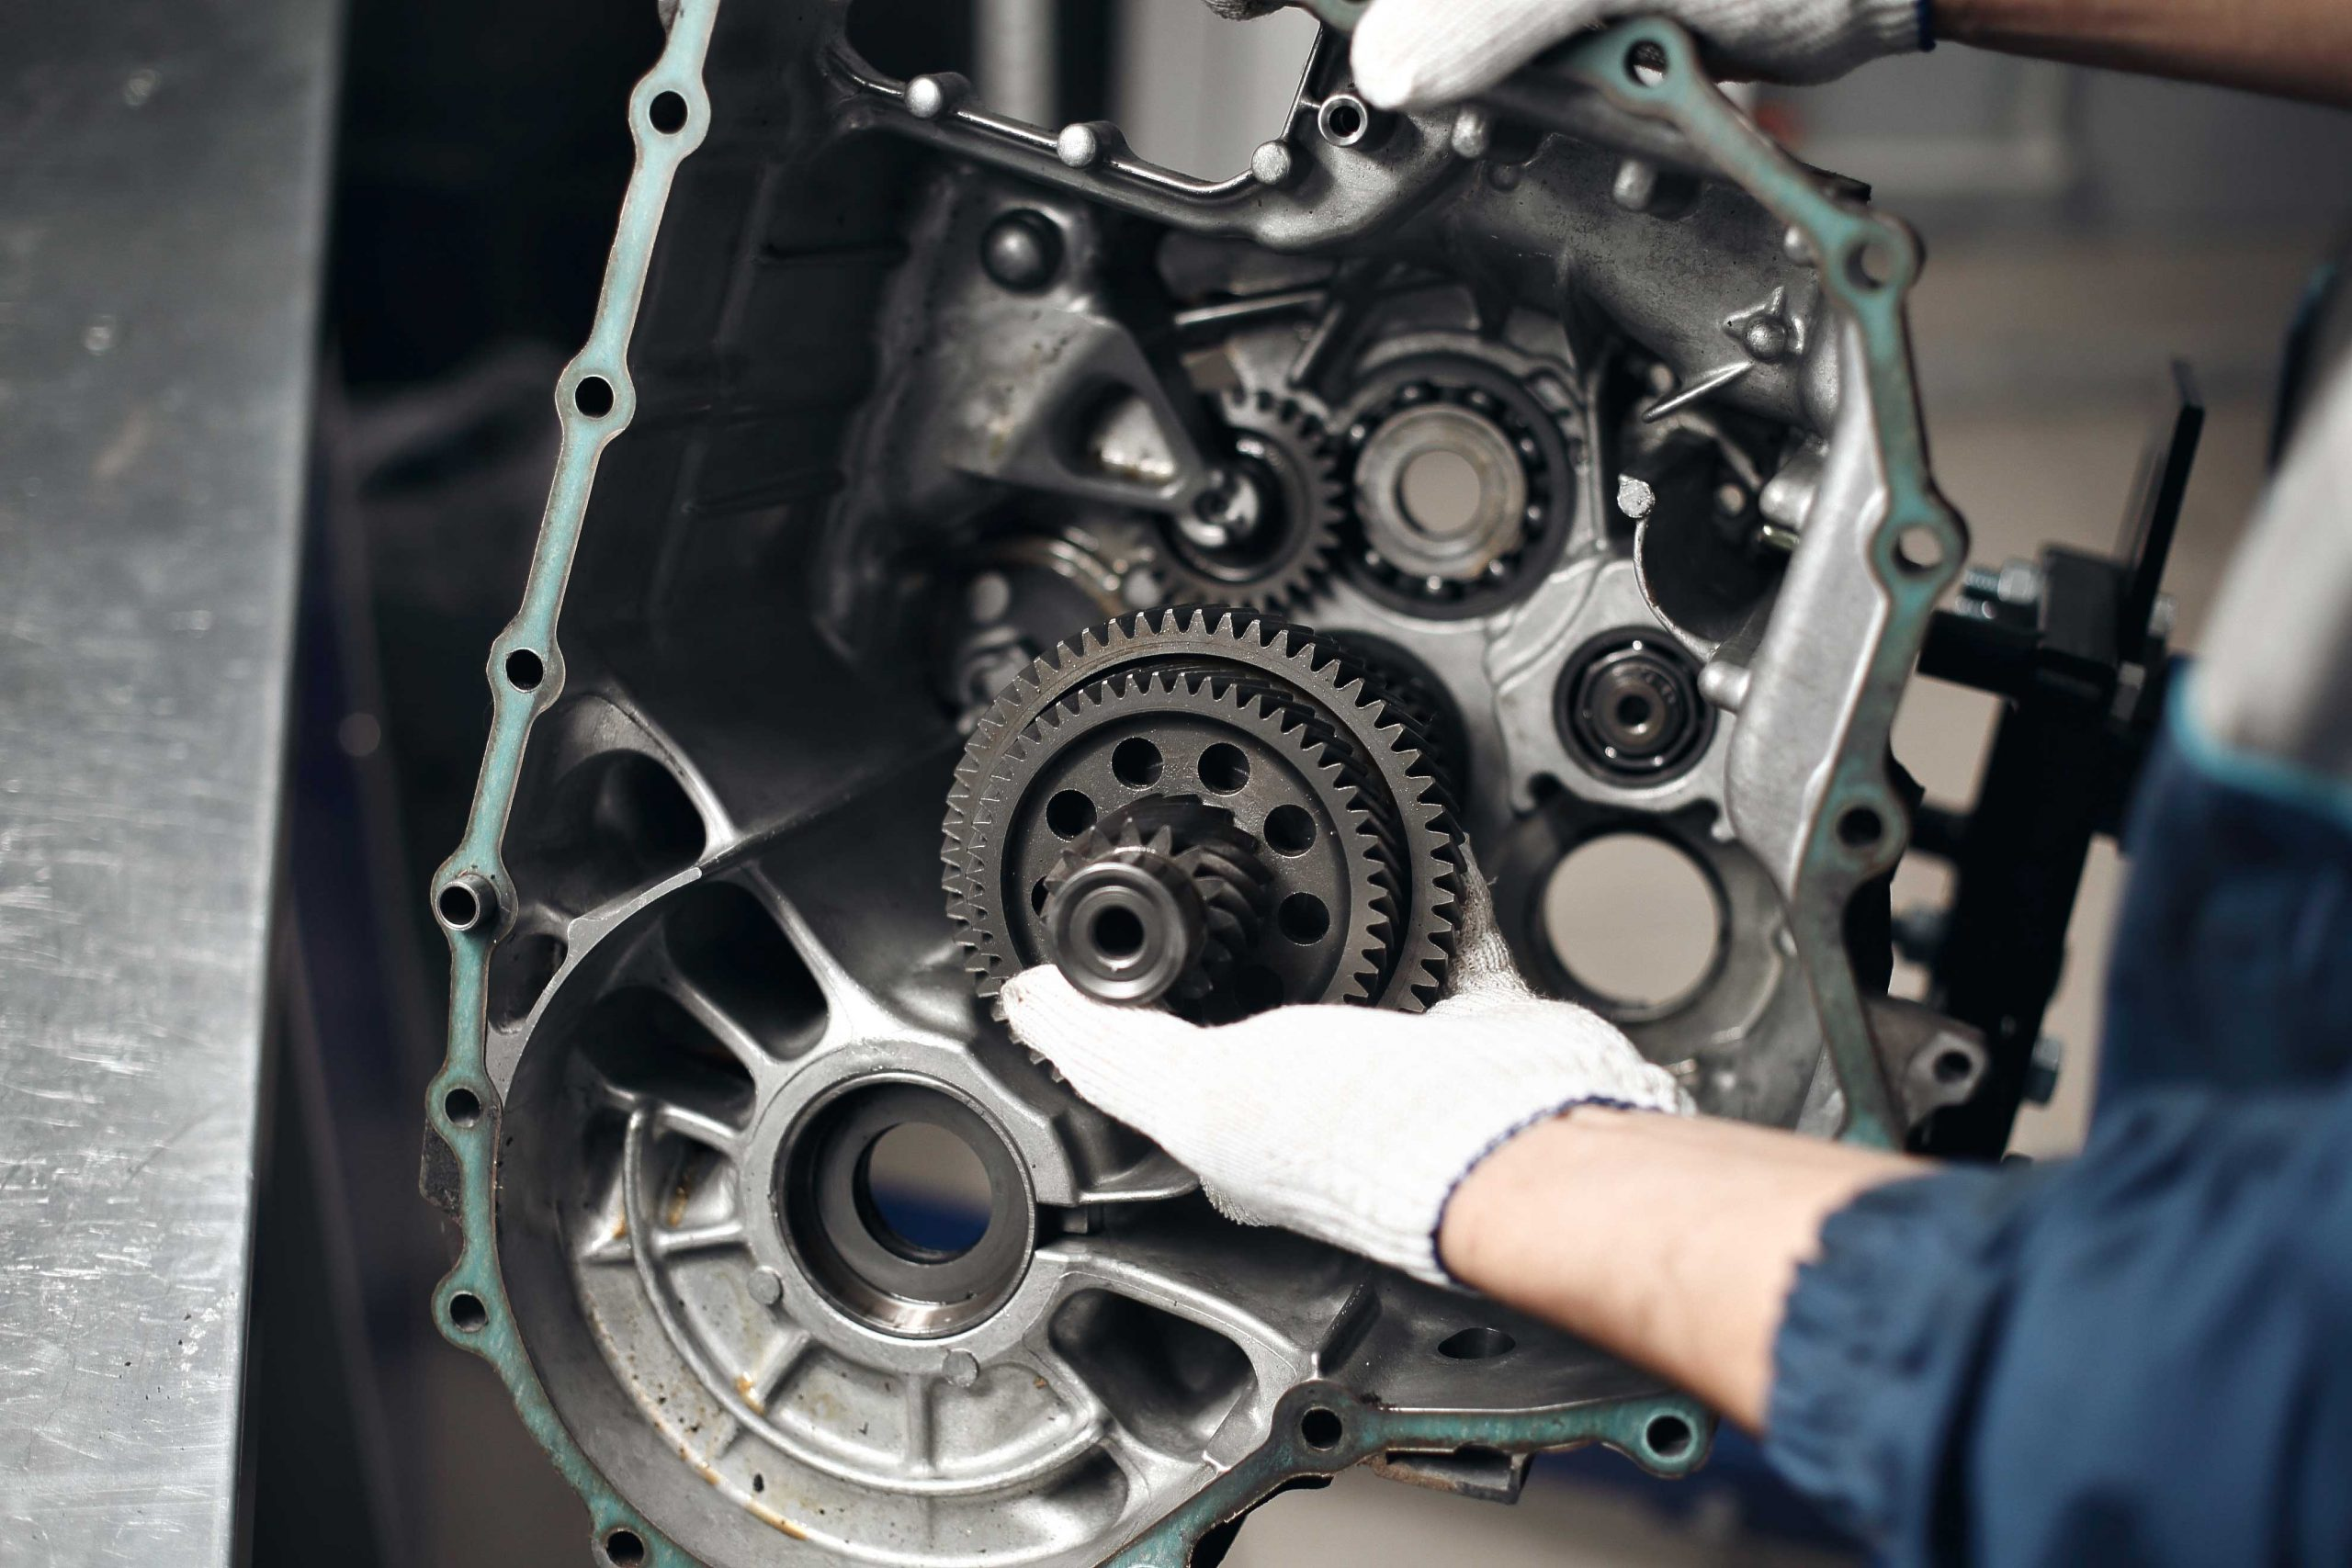 Automatic Transmission Care Tips To Get Your Car Ready For The Summer Angel S El Toro Transmission Auto Repair